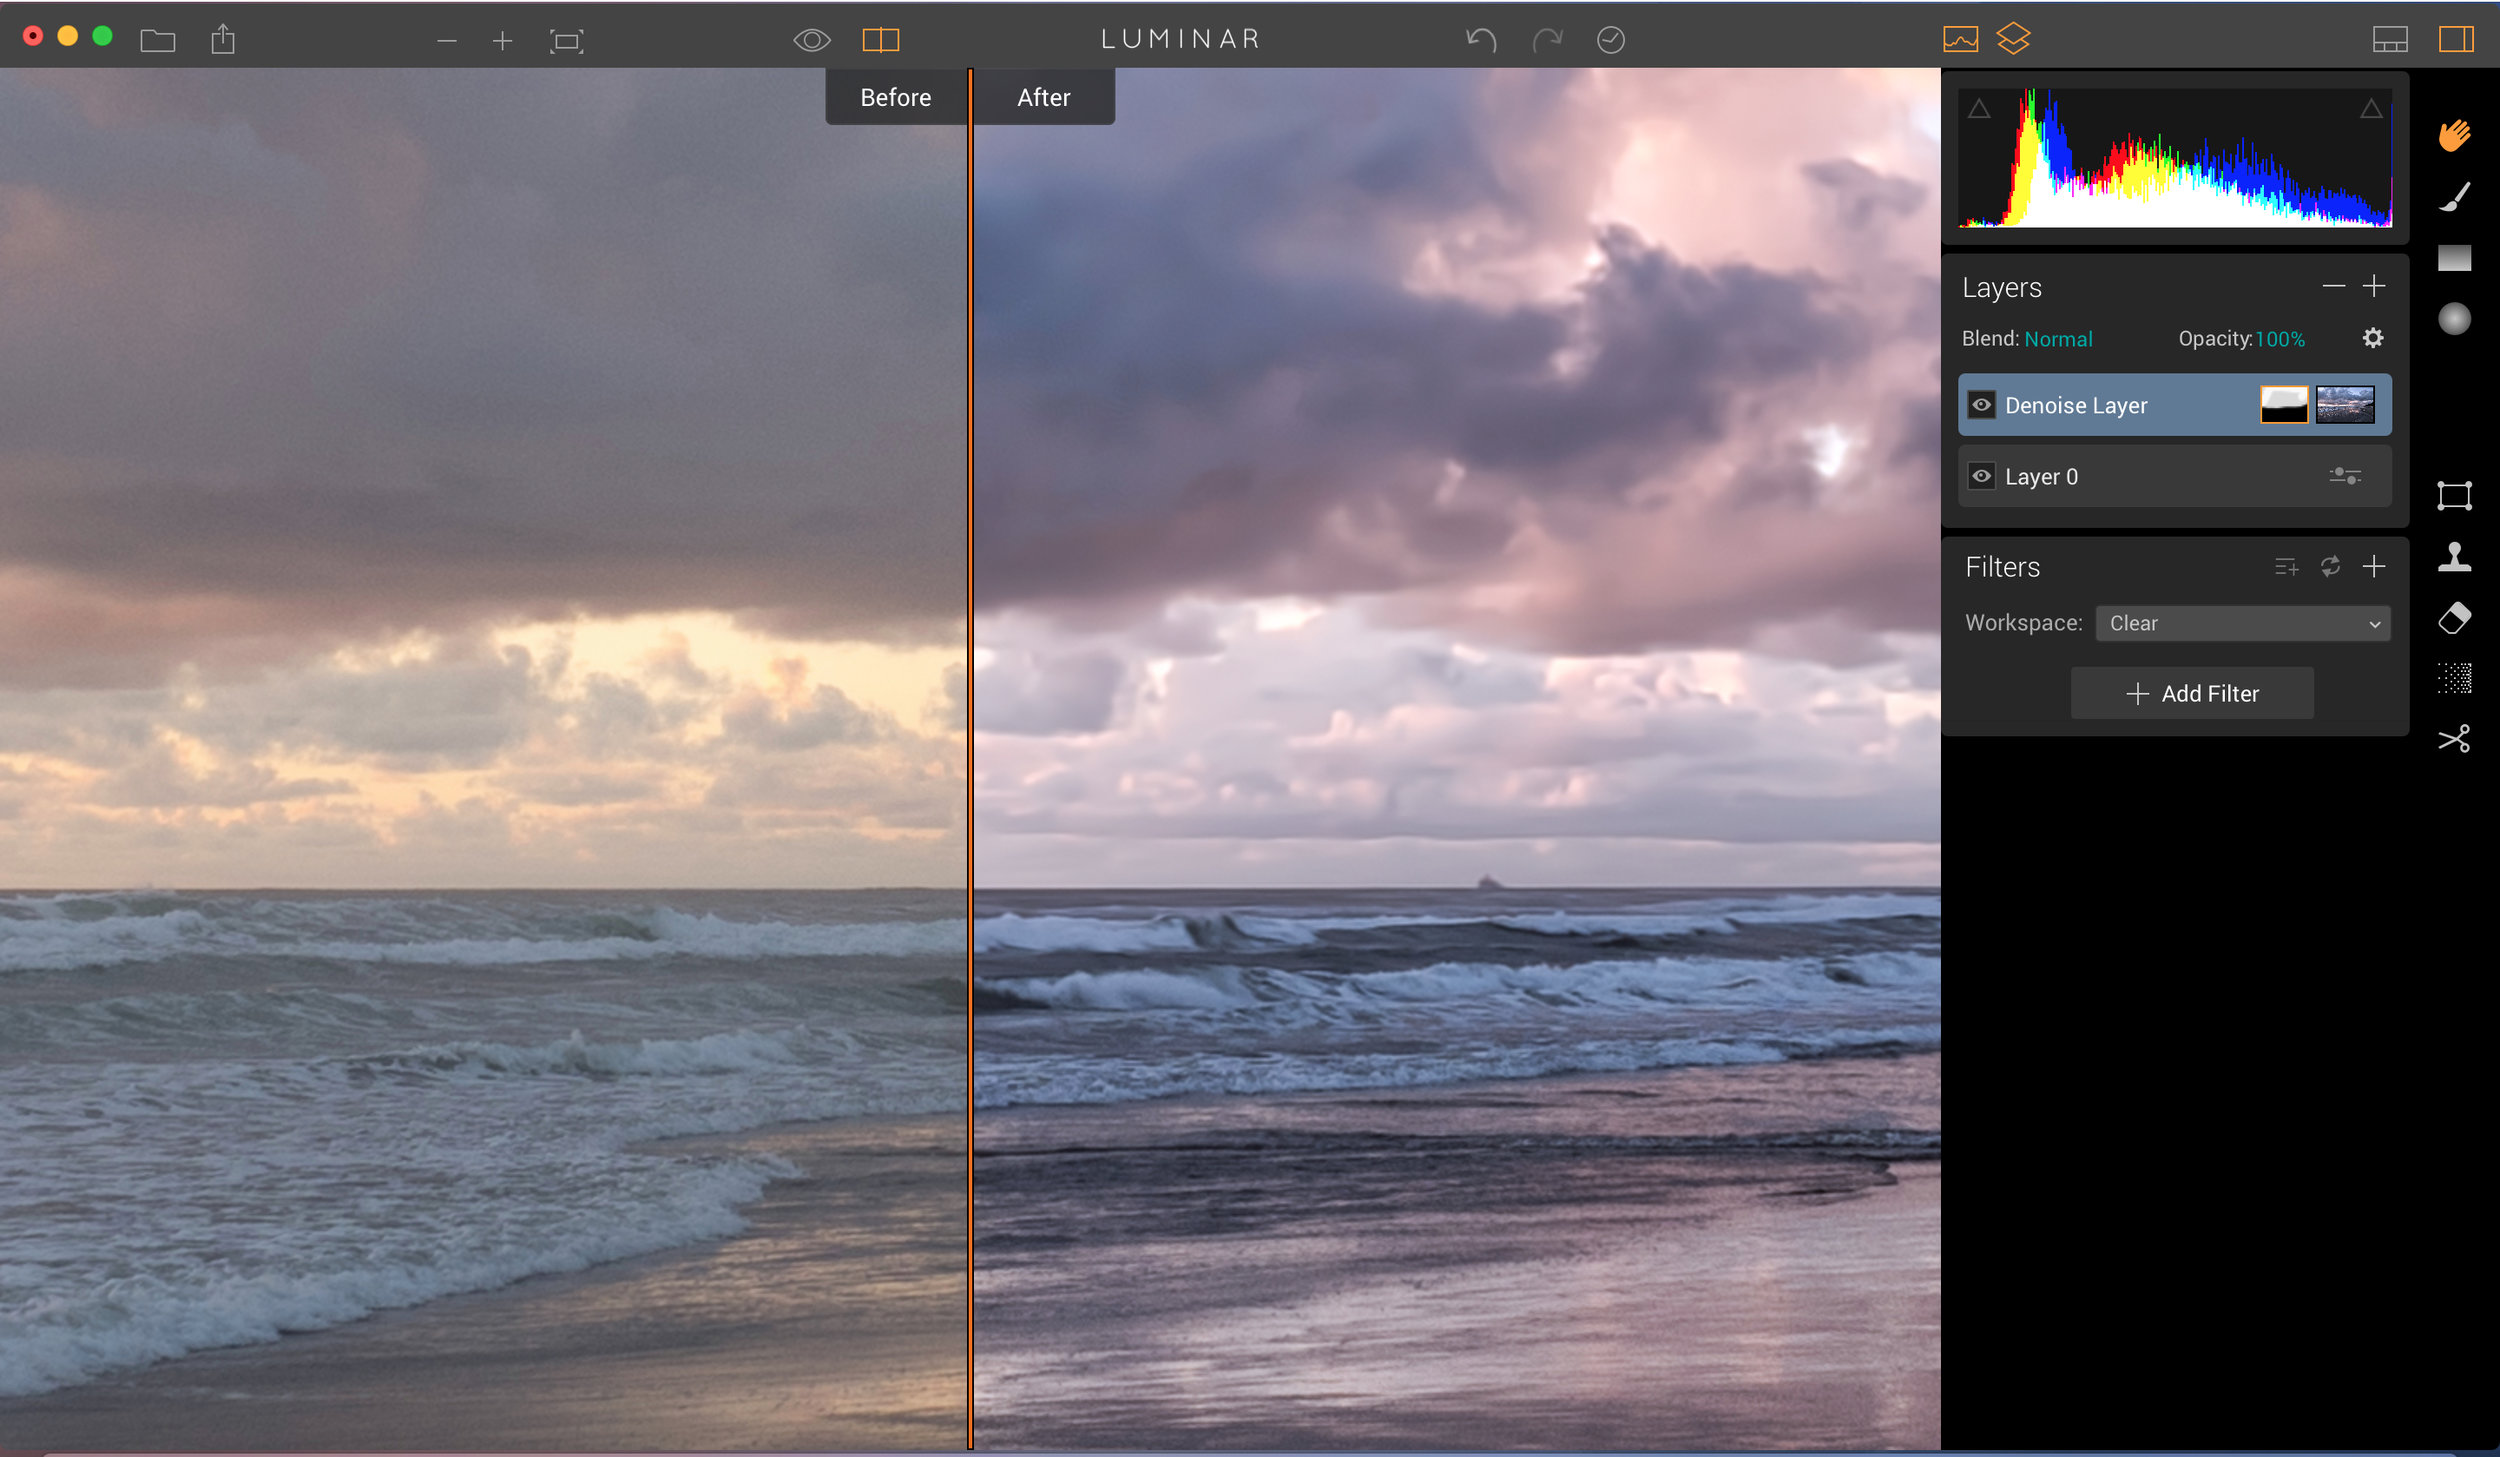 Here's a zoomed in look at the final image after applying noise reduction to the sky with a brush. That left me with Smooth skies and yet I maintained some of the detail in the water and on the beach.